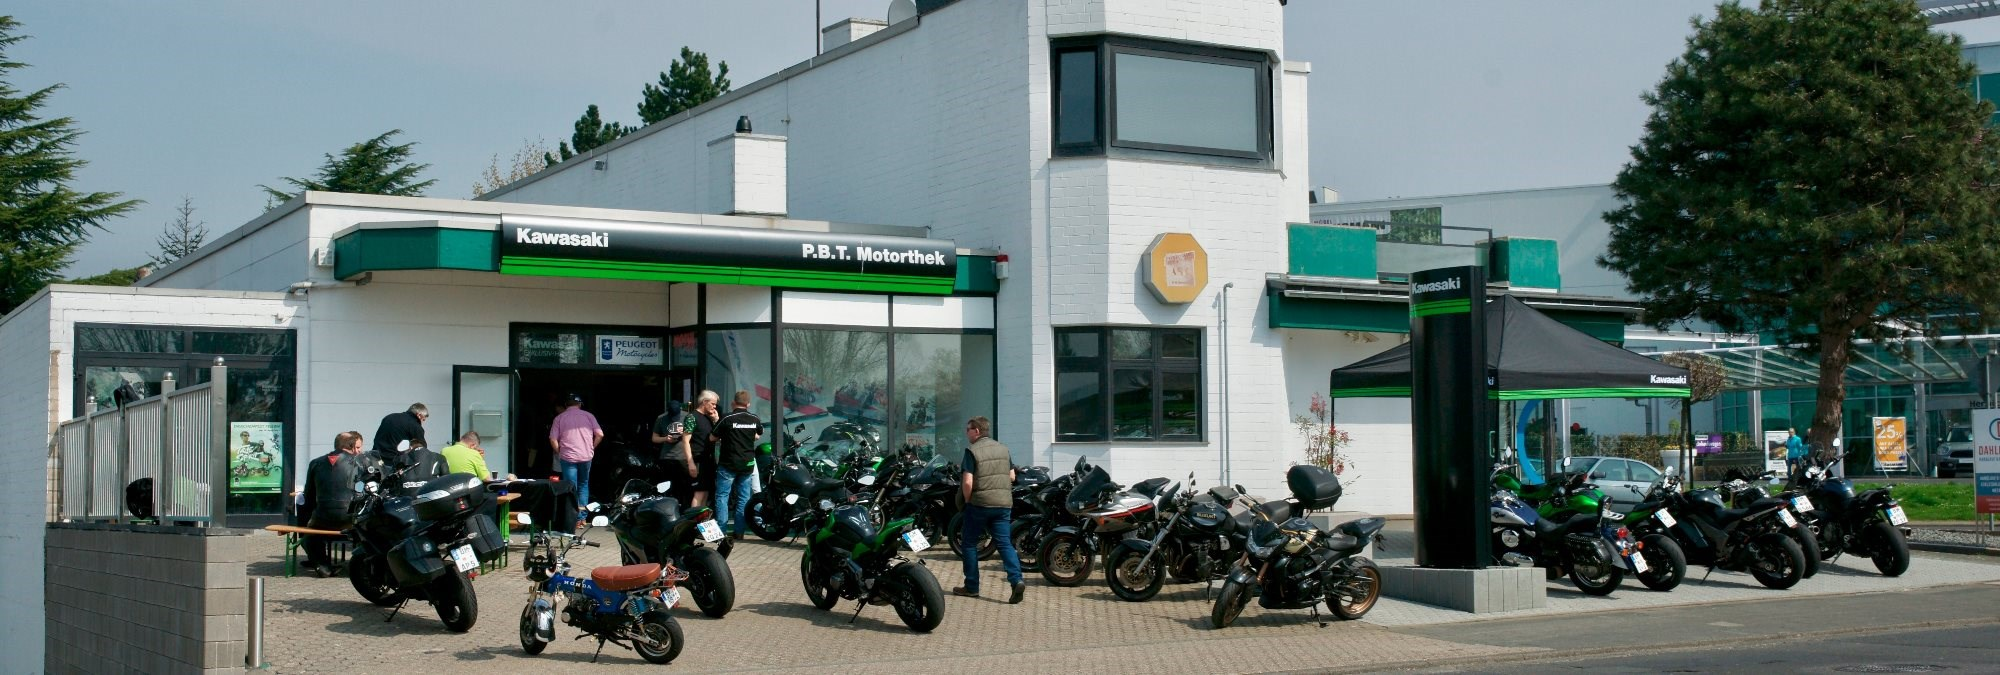 Die PBT Motorthek in Bergheim-Zieverich